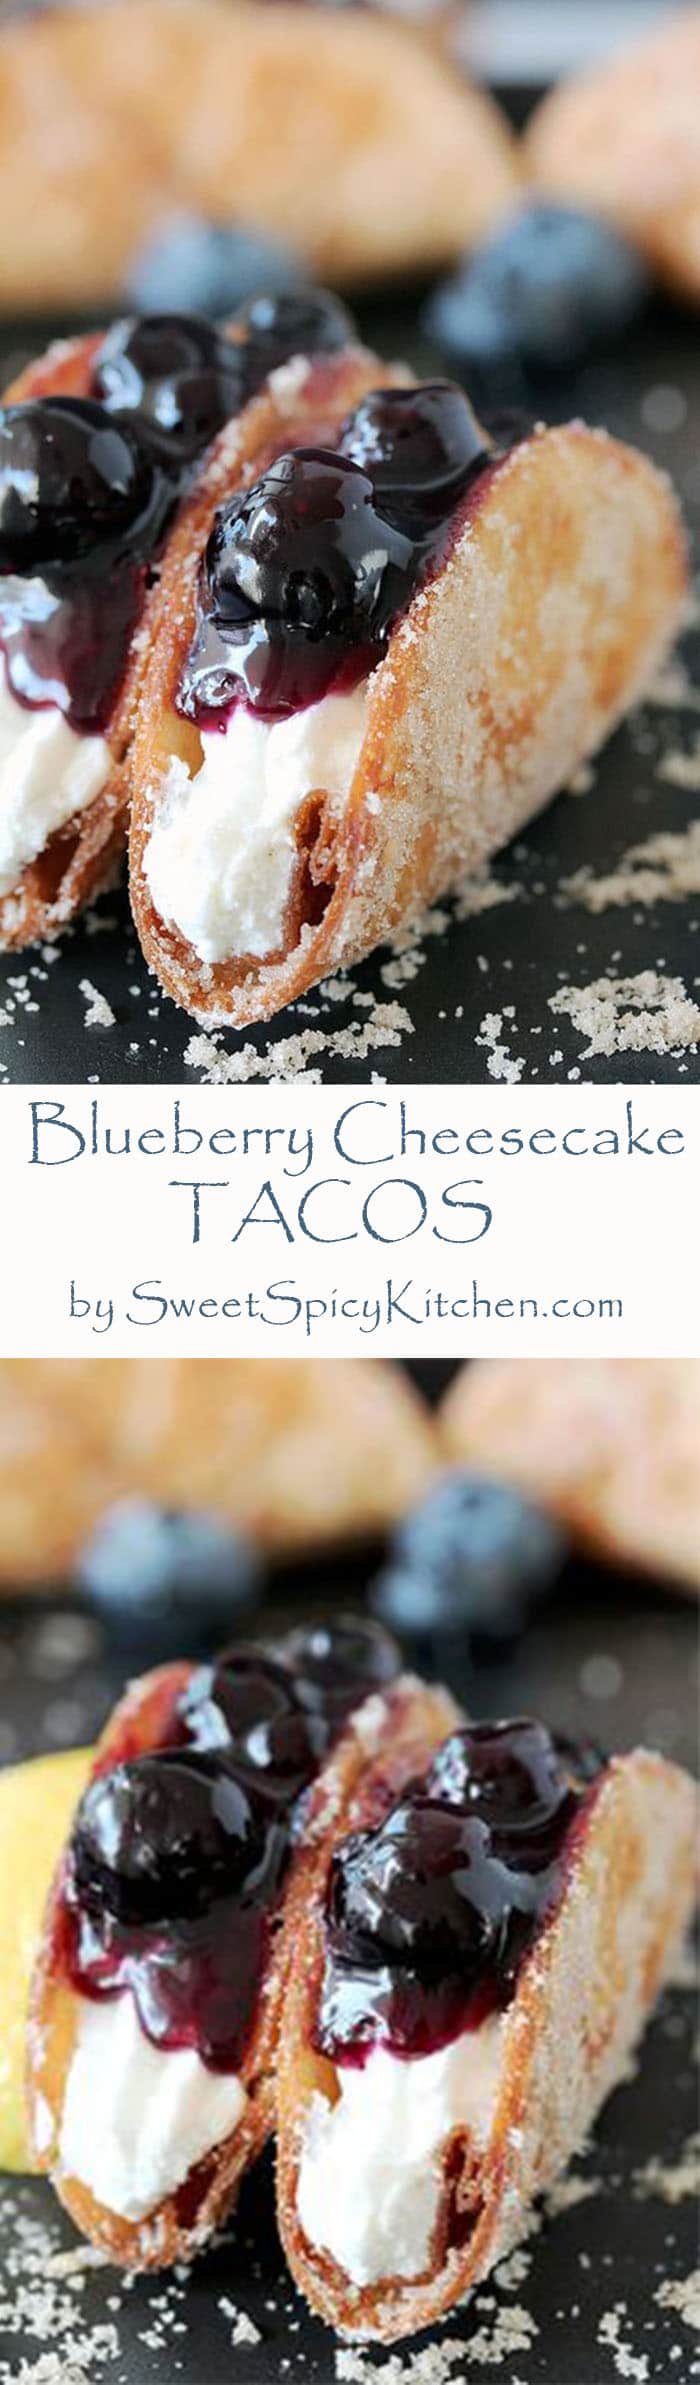 Blueberry Cheesecake Tacos – this is a recipe for very tasty dessert tacos. If you ask me, crunchy tortilla shells, filled with cheesecake filling and topped with homemade blueberry sauce make a perfect dessert